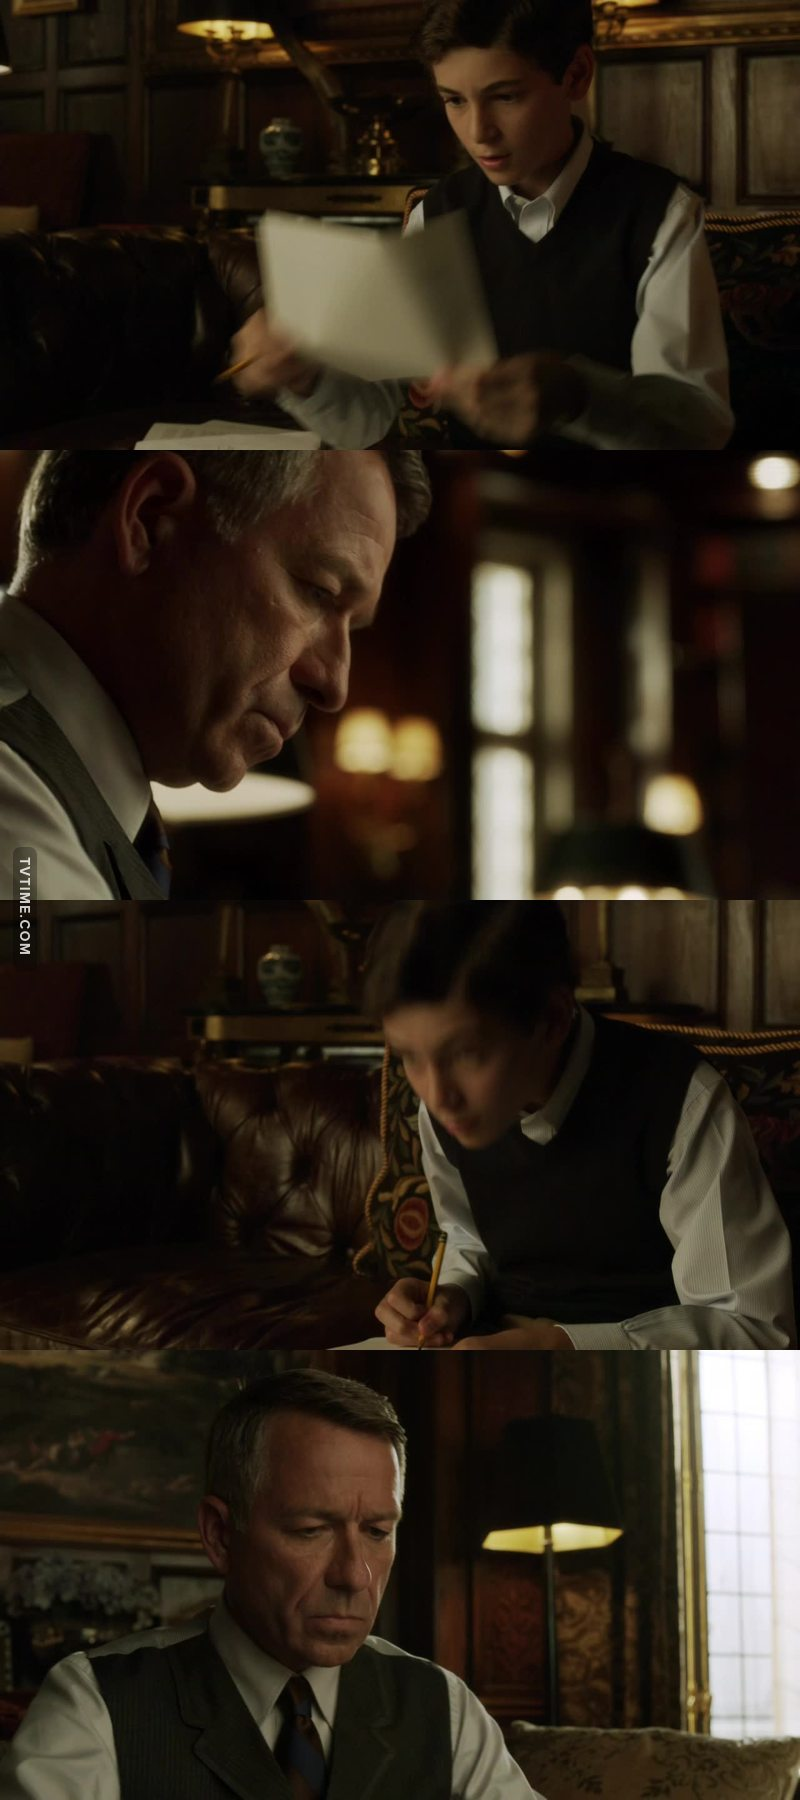 When the little boy teach an adult man. Alfred is so protective with Bruce like a father with a son.